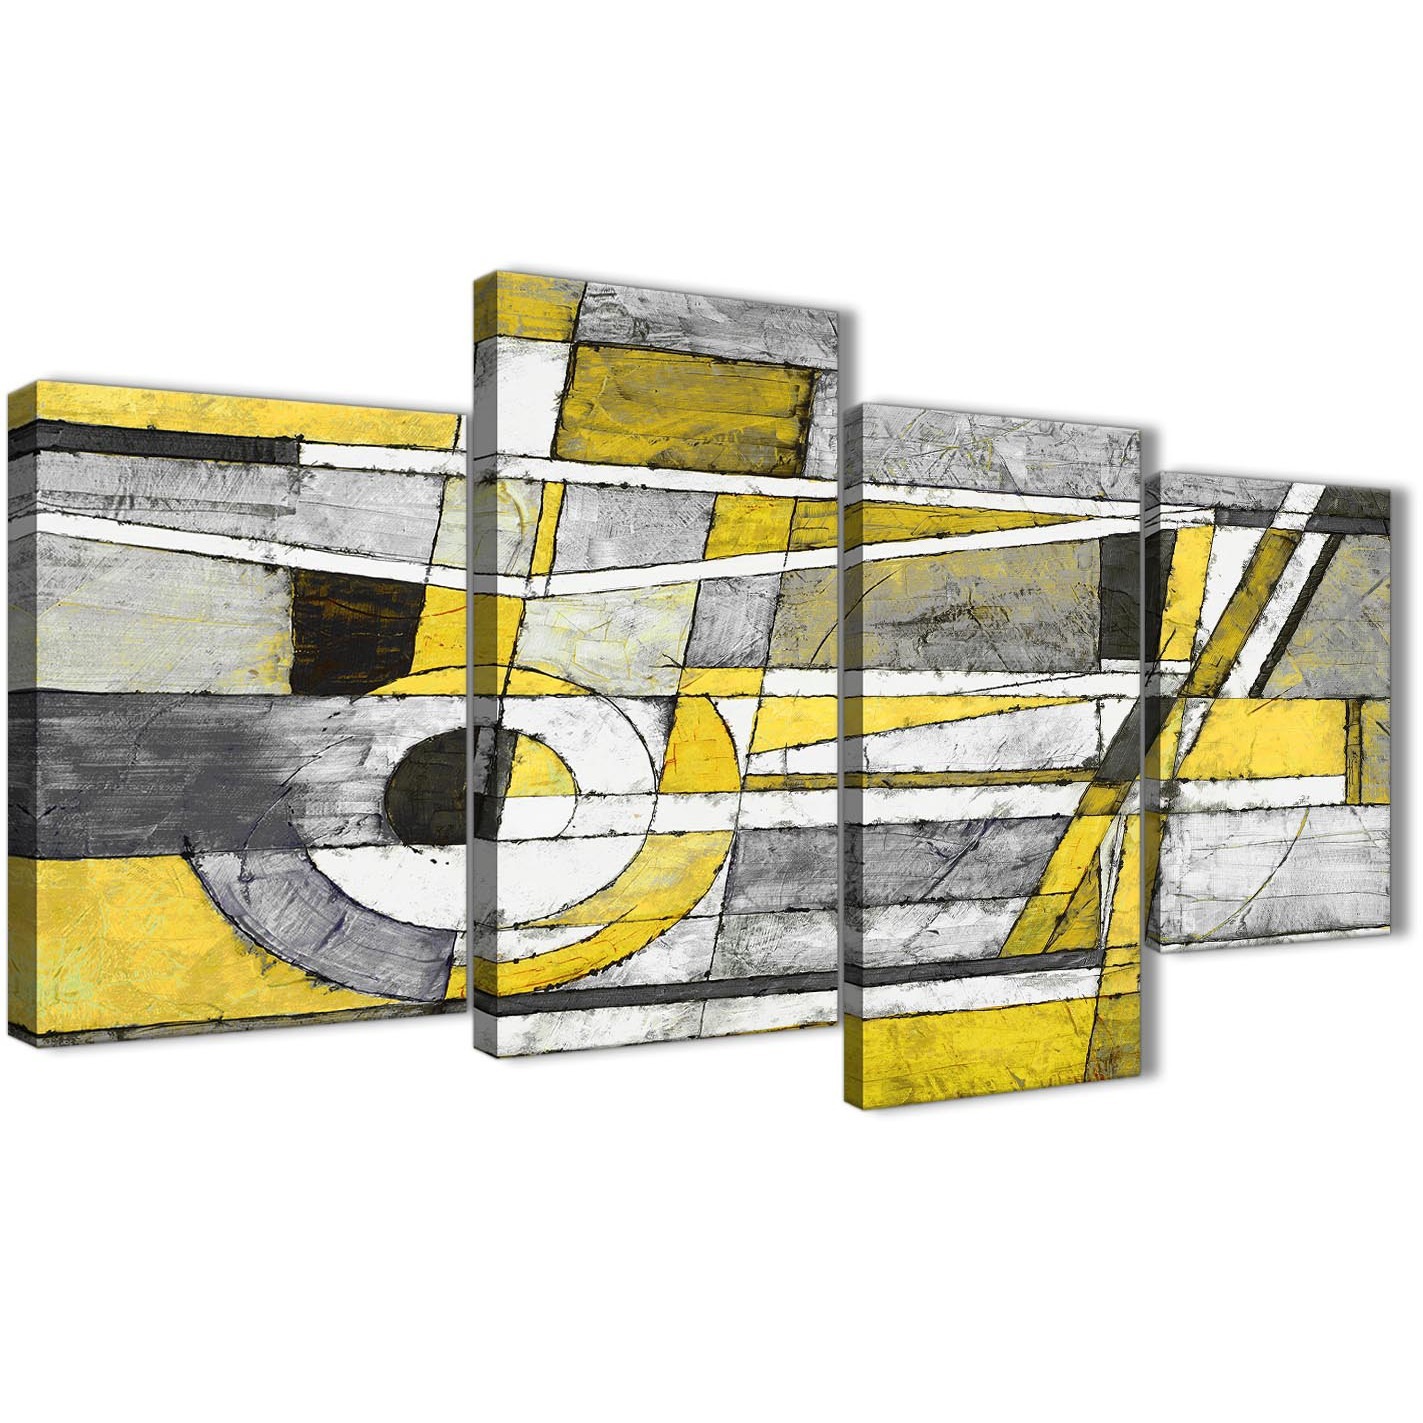 4f3504faa01 Extra Large Yellow Grey Painting Abstract Bedroom Canvas Wall Art Decor -  4400 - 130cm Set Display Gallery Item 1 ...